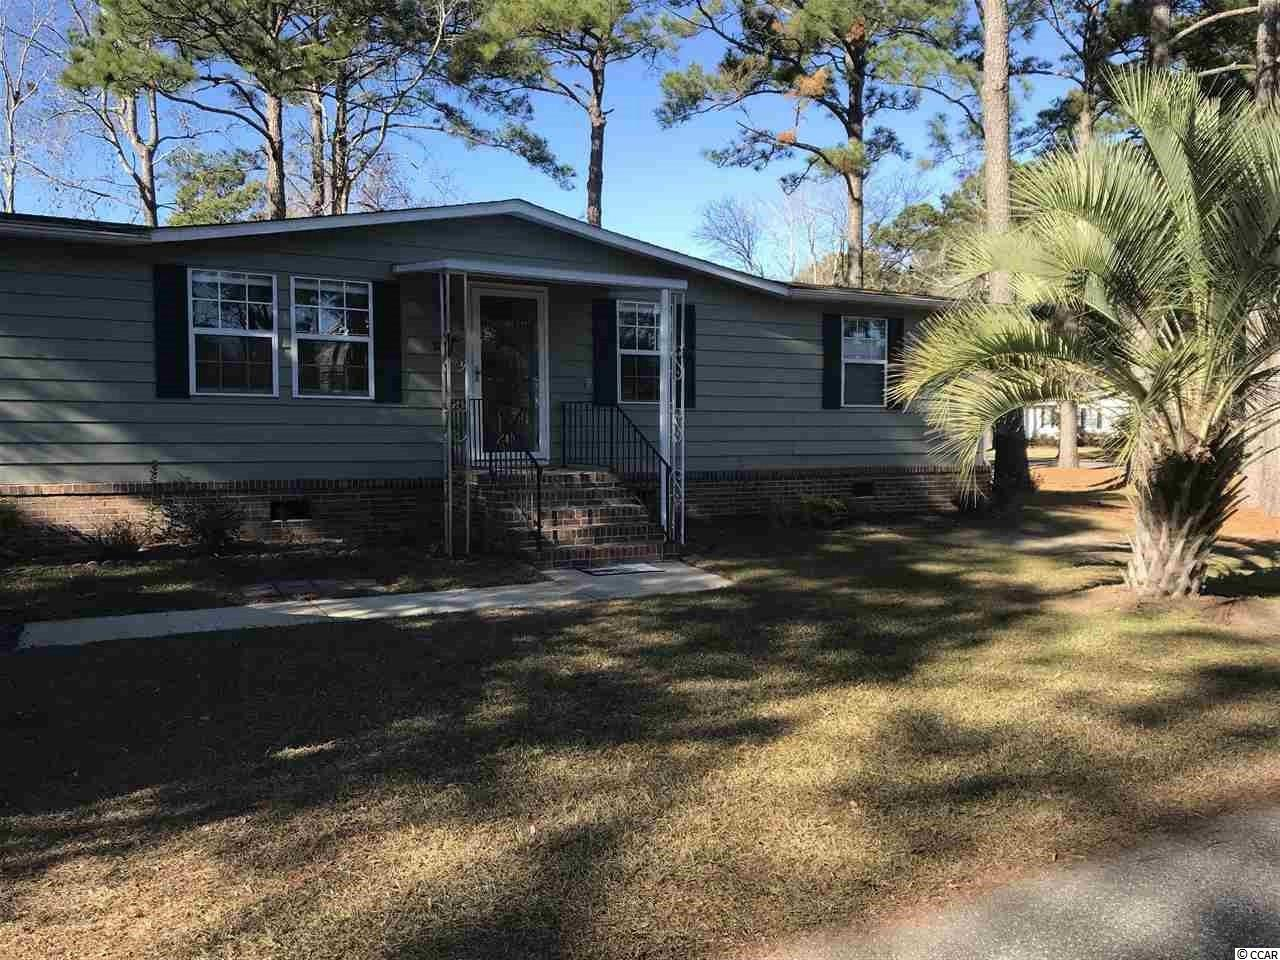 Come and see this lovely, recently renovated home in the Ocean Pines 55+ community (formerly known as Jensens).  This move in ready 3 bedroom home with large sun porch is located on a corner lot and located just about a mile to the beach. New vinyl wood flooring throughout, recently renovated eat in kitchen with new cabinets and formal dining room makes this home a must have. Master Bath has a walk in shower and Master closet space has California Closet System. This unit also has upgraded sheetrock walls.  This awesome location ensures you easy access to all of the amenities Murrells Inlet has to offer including fine dining, the marsh walk and shopping.  Community has two pools for you to use as well as a community club house that offers lots of activities for the residents to participate in. Shed in the back yard is wired with electric.   Monthly fee includes the pool, club house and trash pick up.  Pets allowed.